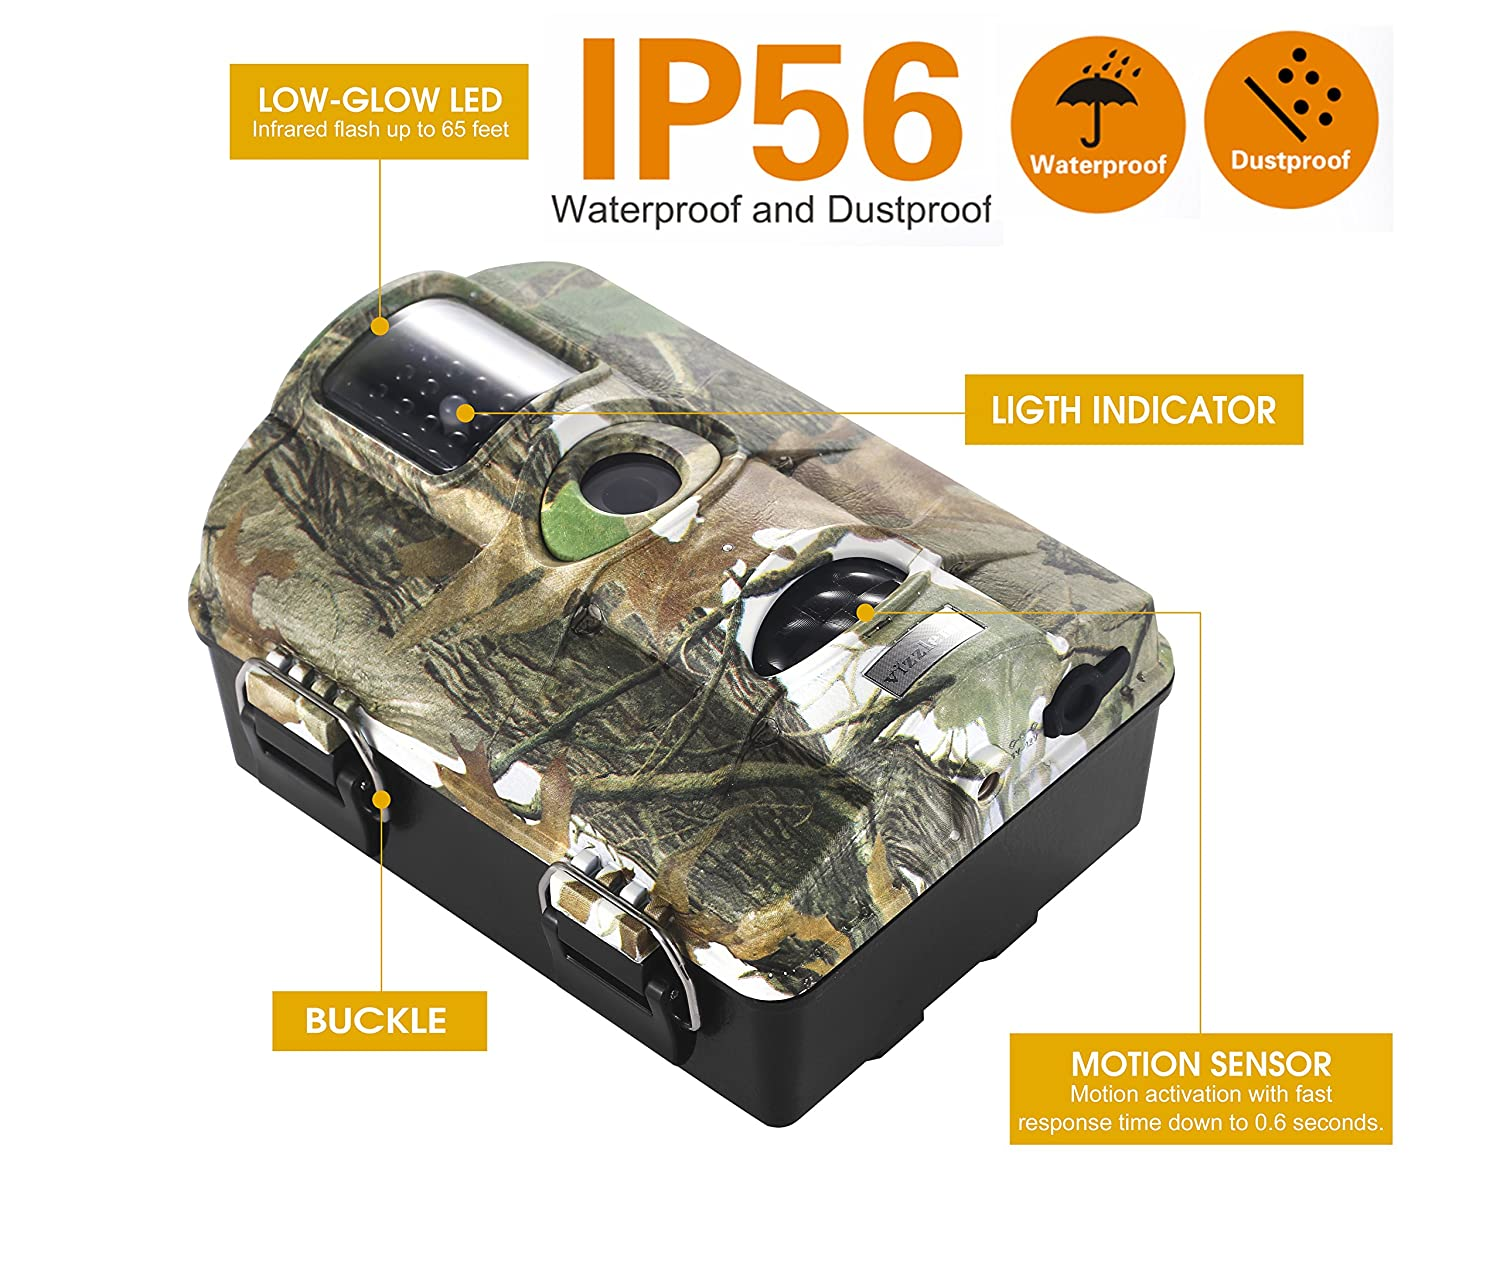 Amazon.com: Trail Camera Vizzlema 12MP Wildlife Hunting Camera Game Camera Motion Activated 65ft Long Range No Glow Infrared Night Version with 2.4in LCD ...